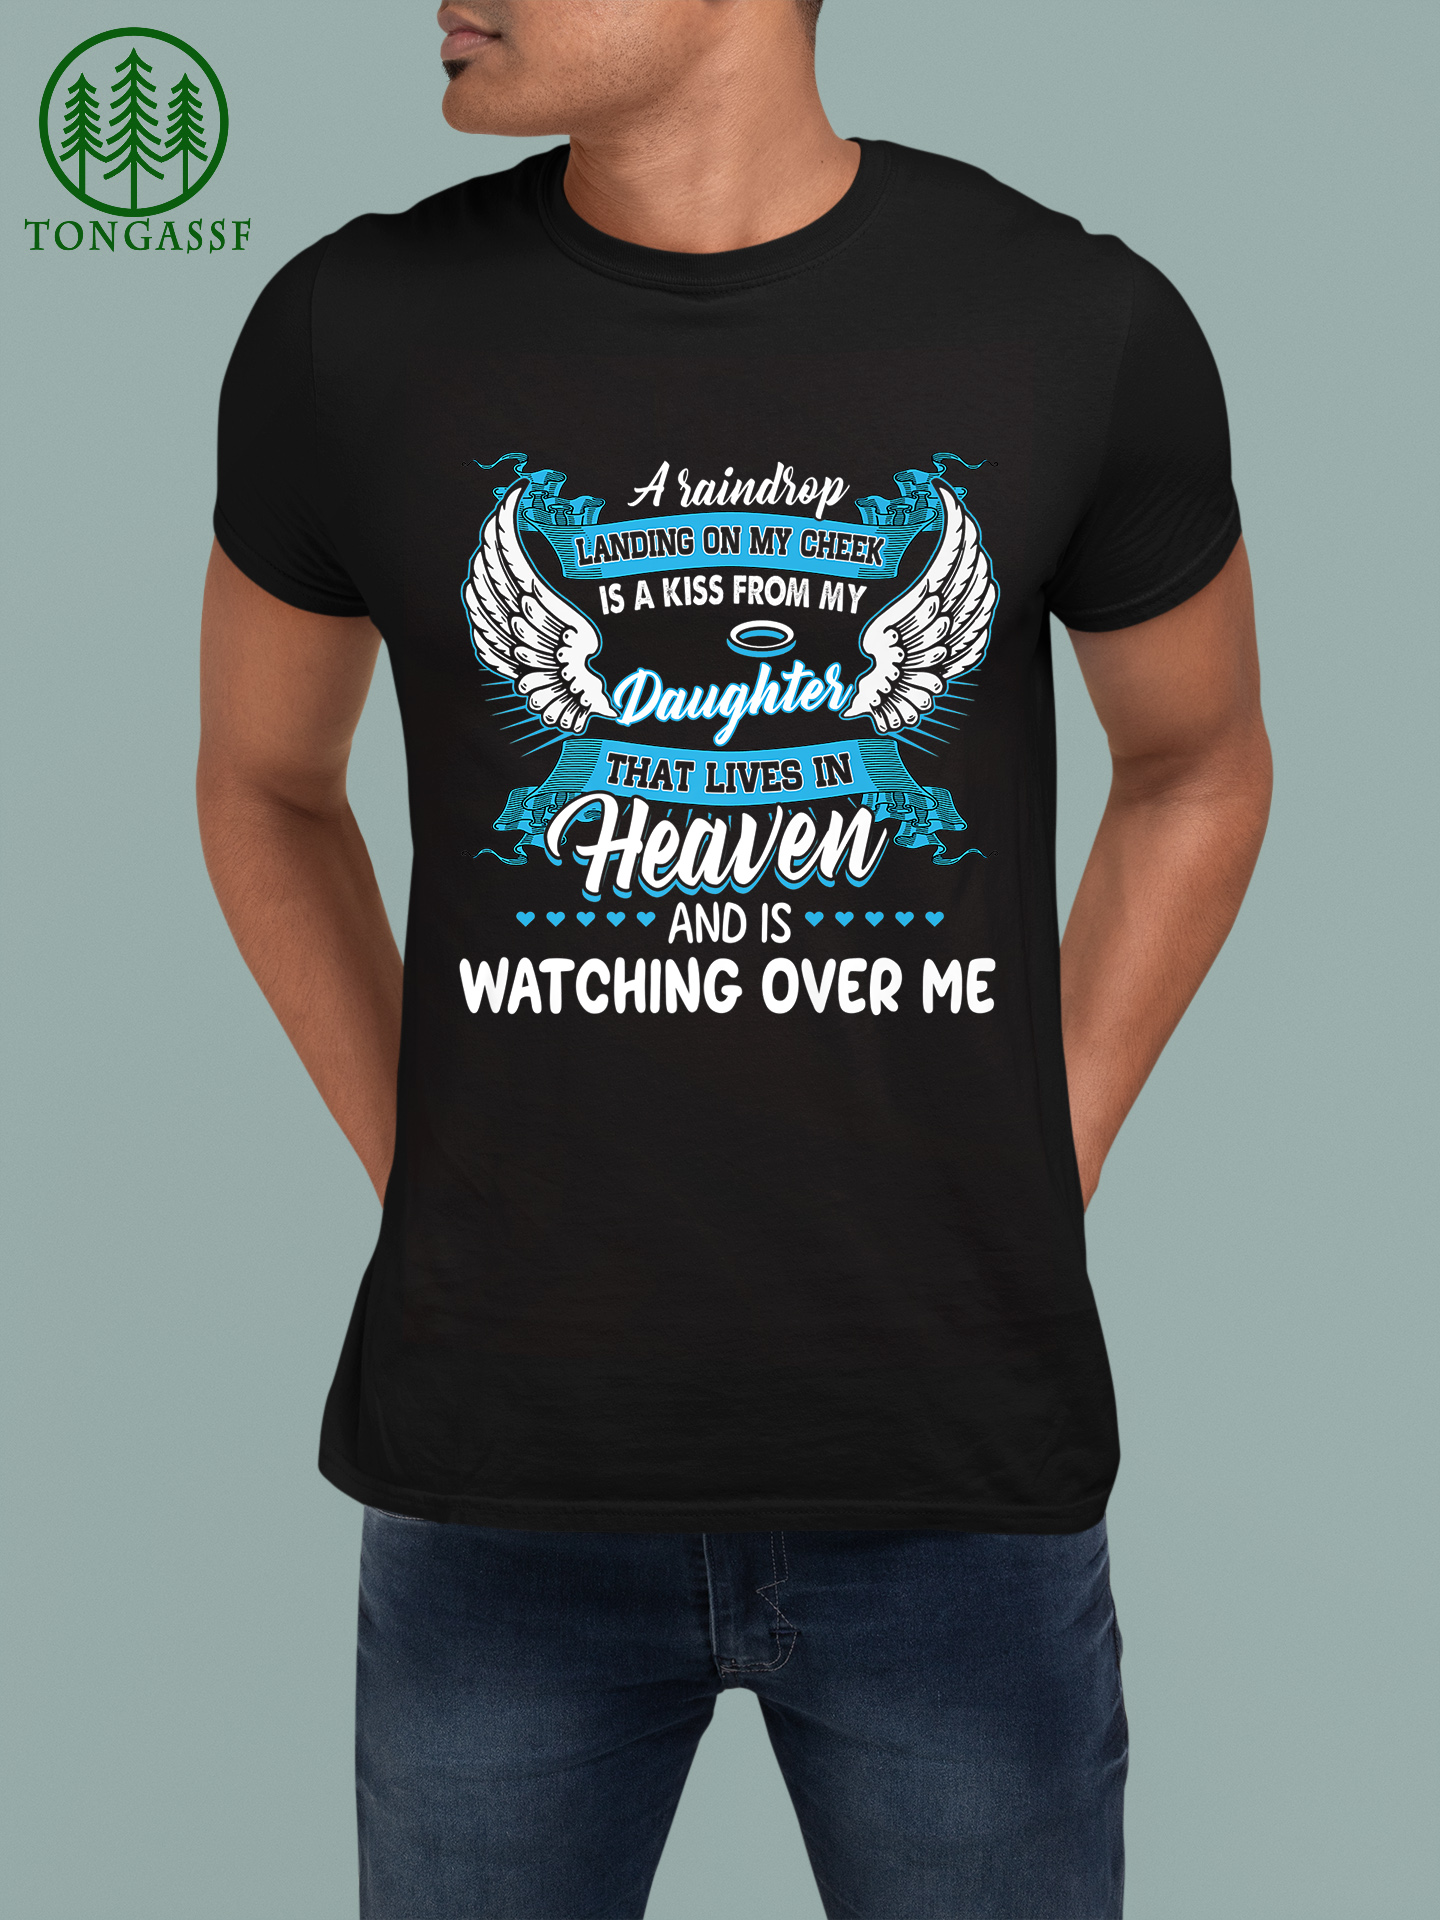 My Daughter Lives in Heaven and Is Watching Over Me Premium T Shirt